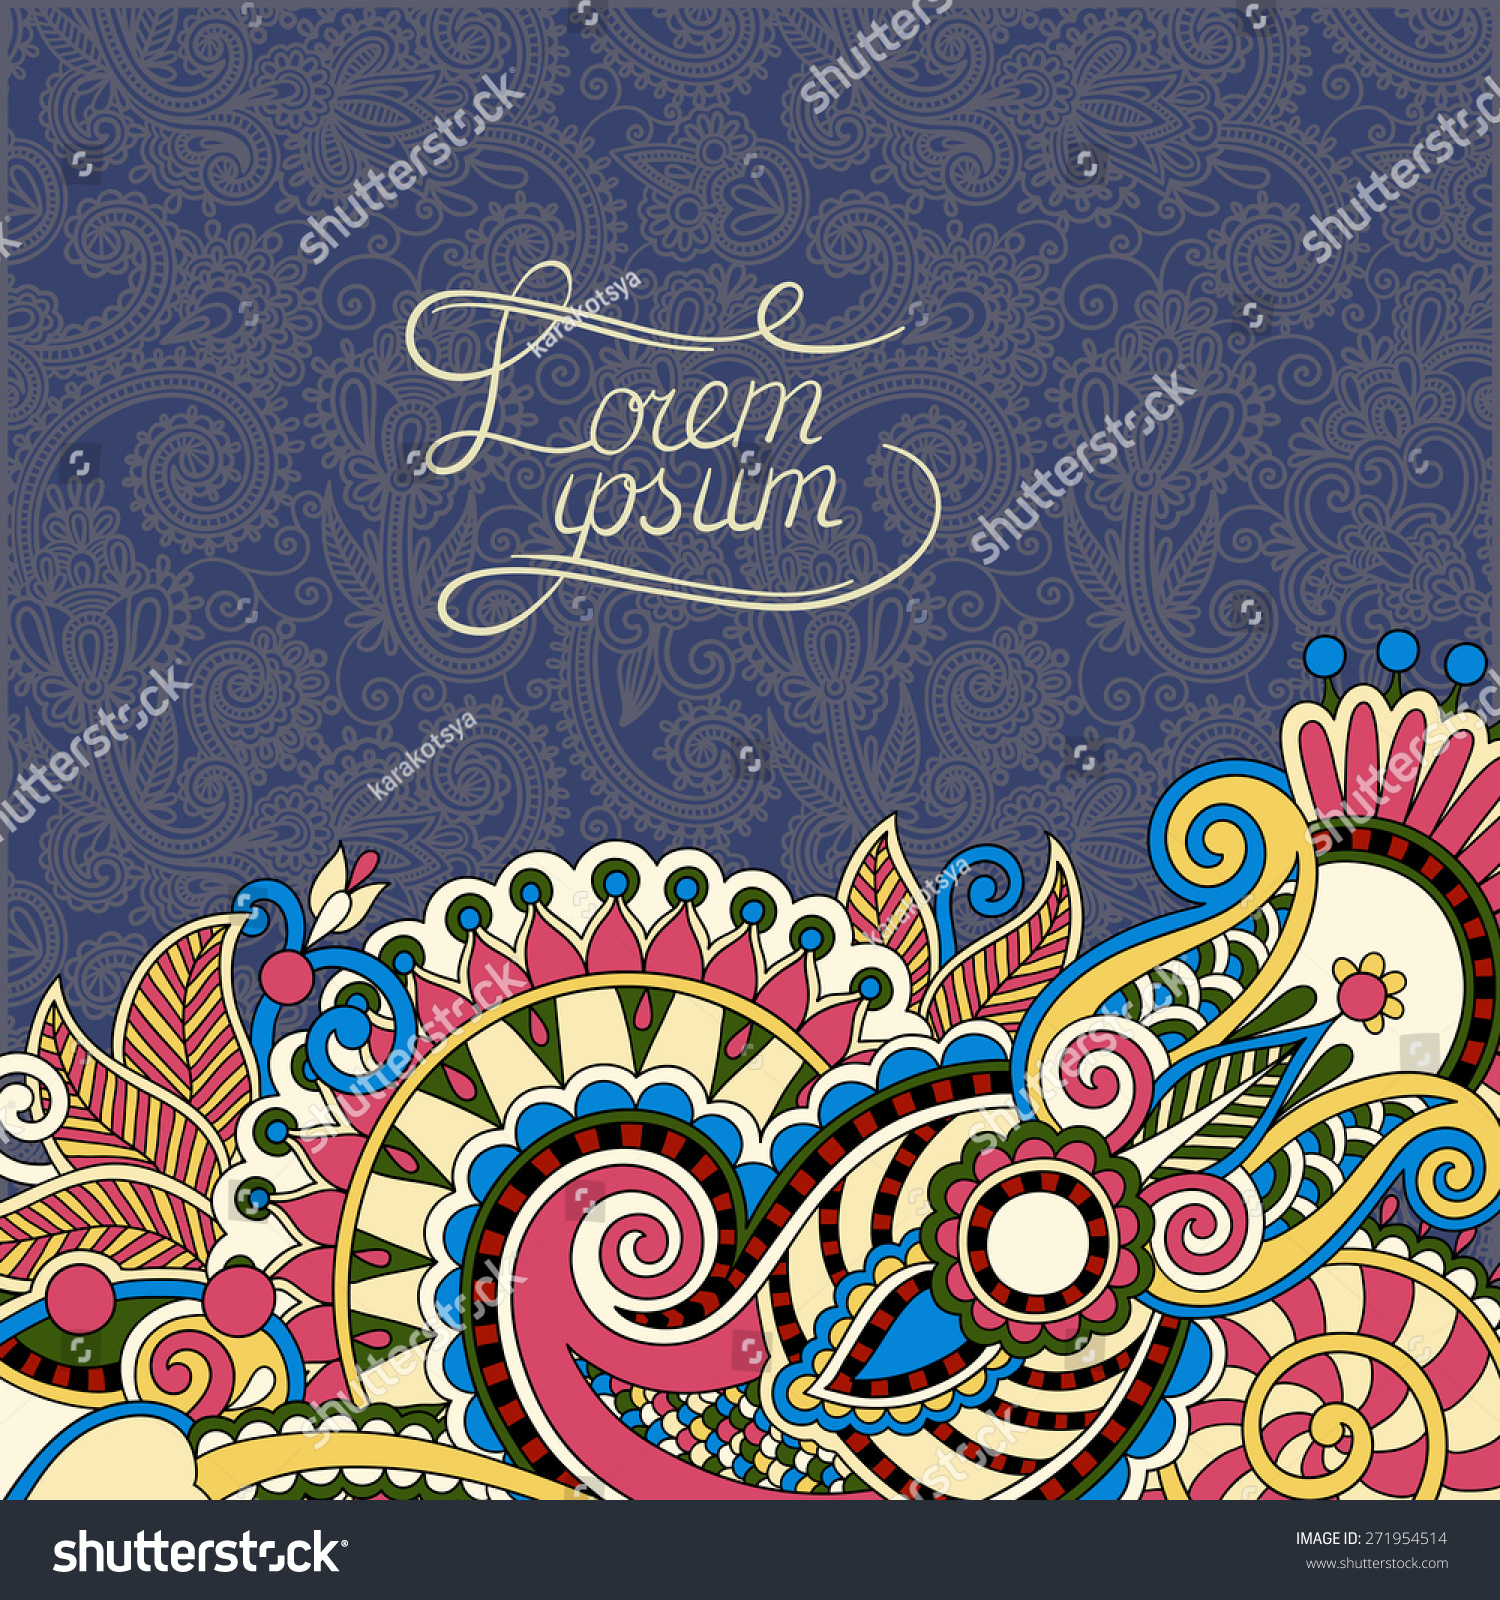 Book Cover Design Flower : Paisley design on decorative floral background stock